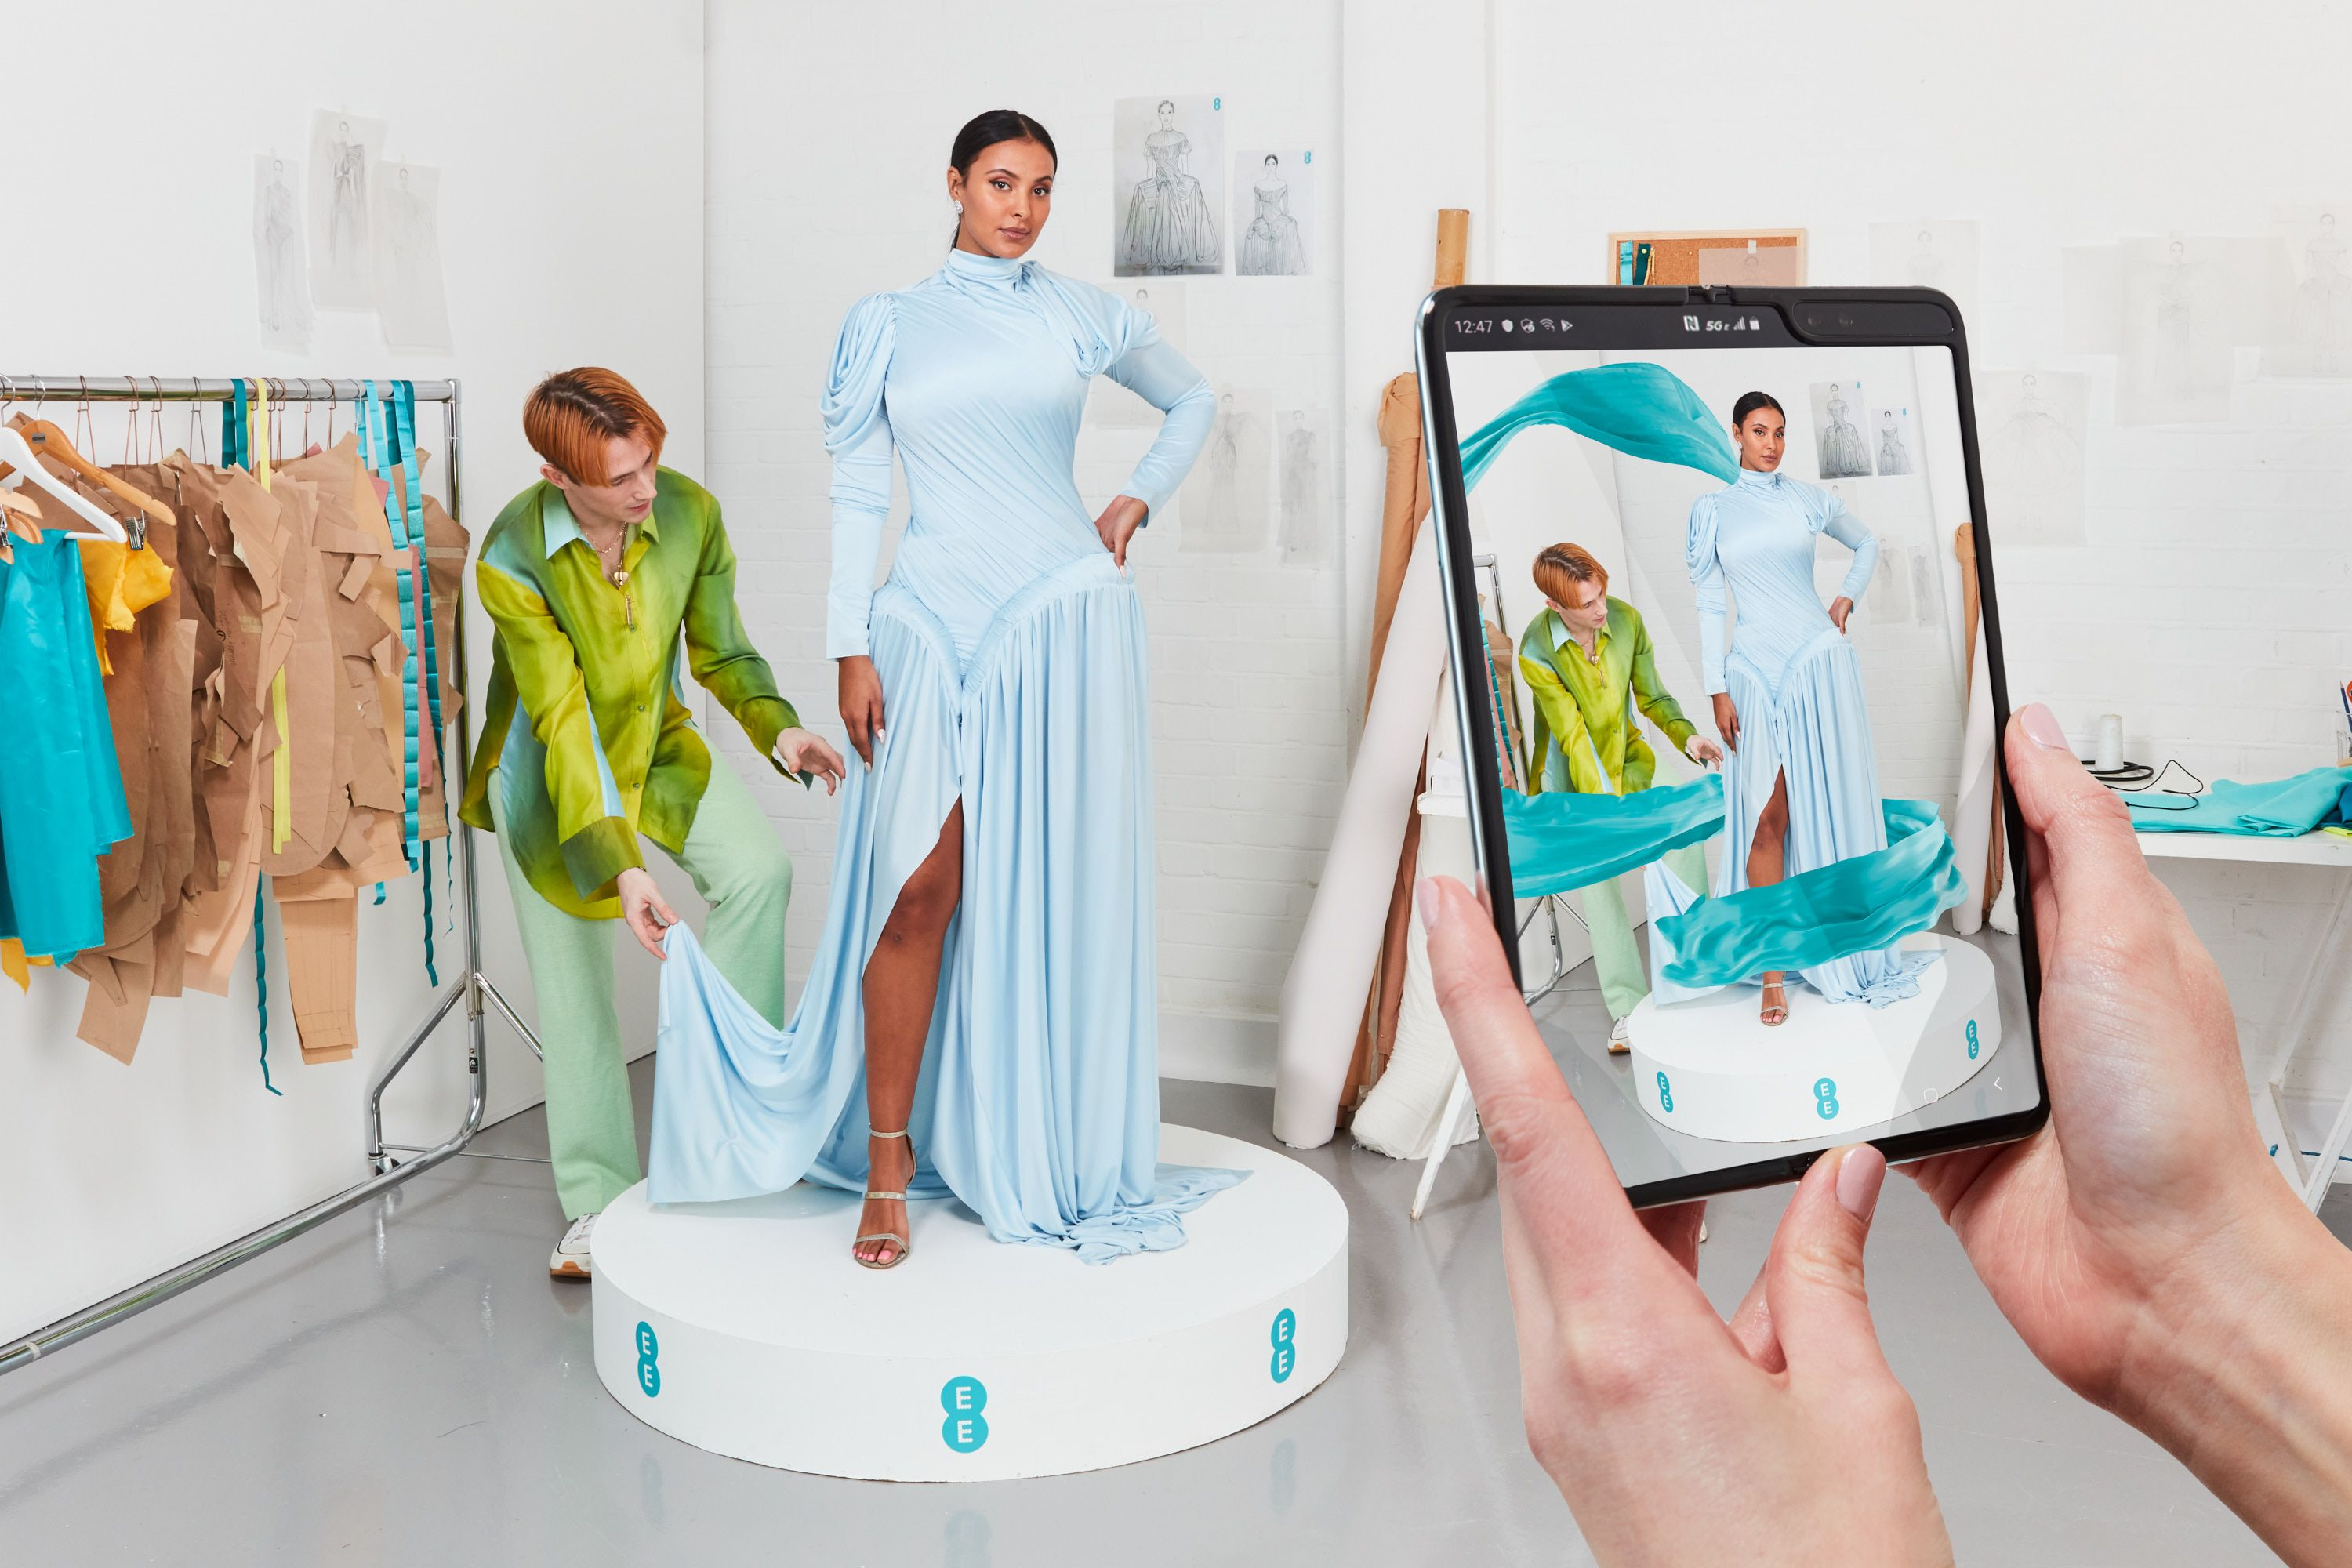 Richard Malone has designed an Augmented Reality dress for the Baftas red carpet